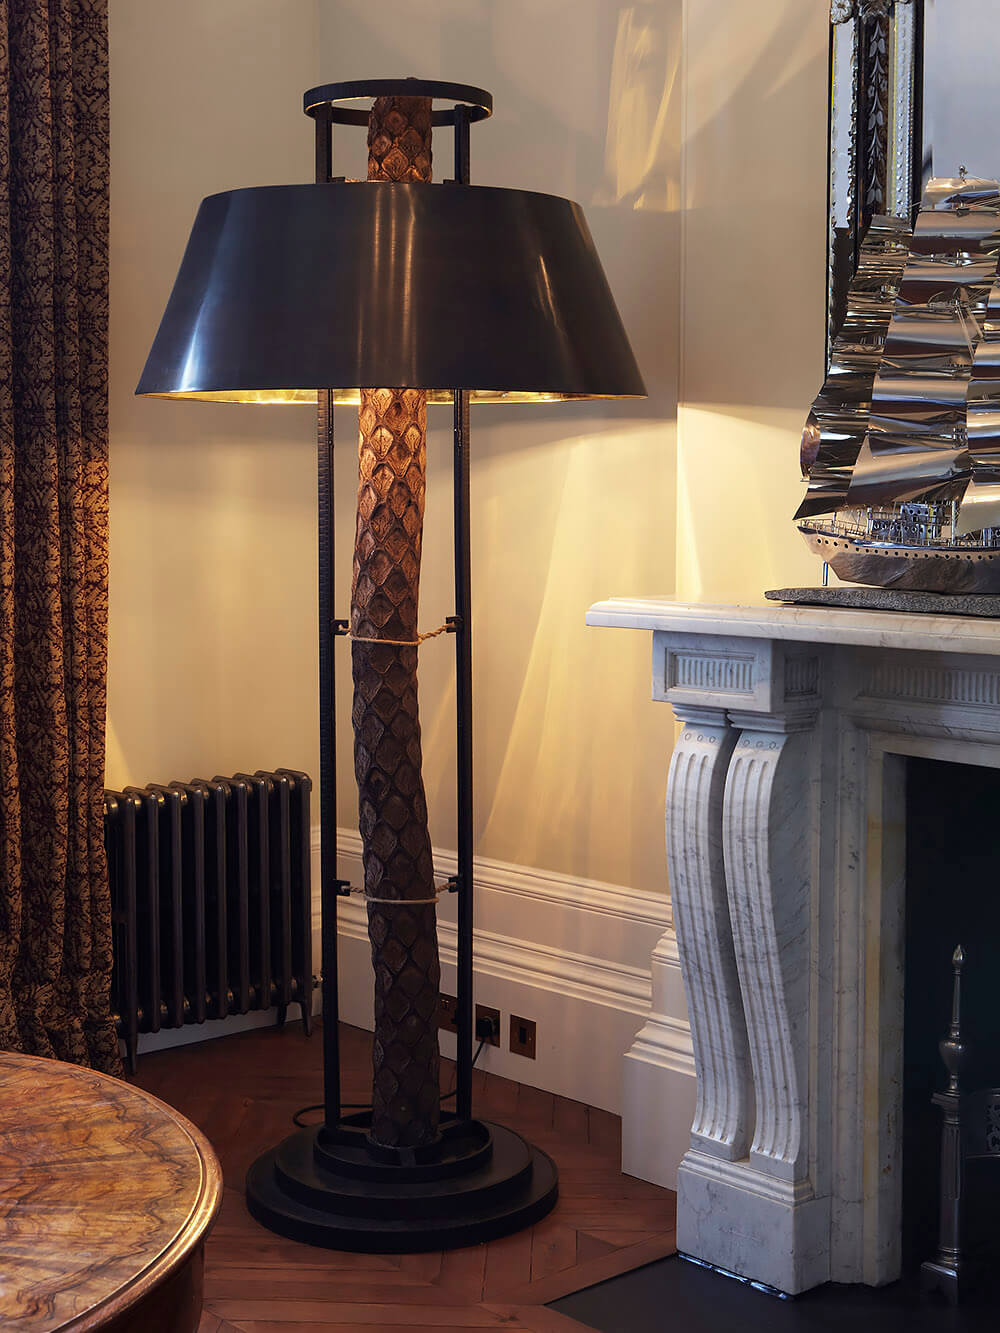 Ladbroke-Grove-W11-Mantelpiece-floor-lamp